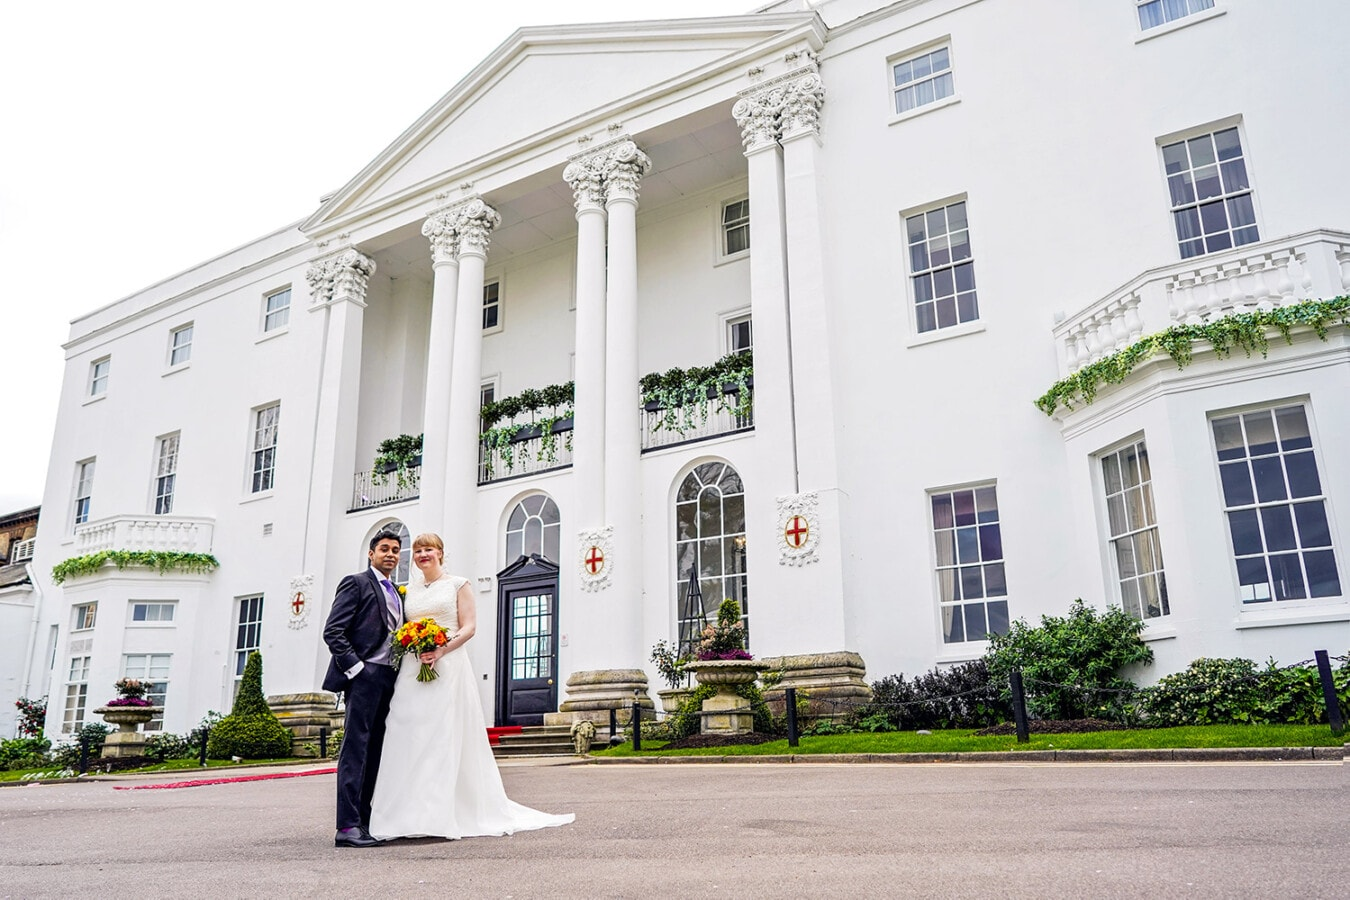 The white house at beaumont house with a bride and groom on their wedding day